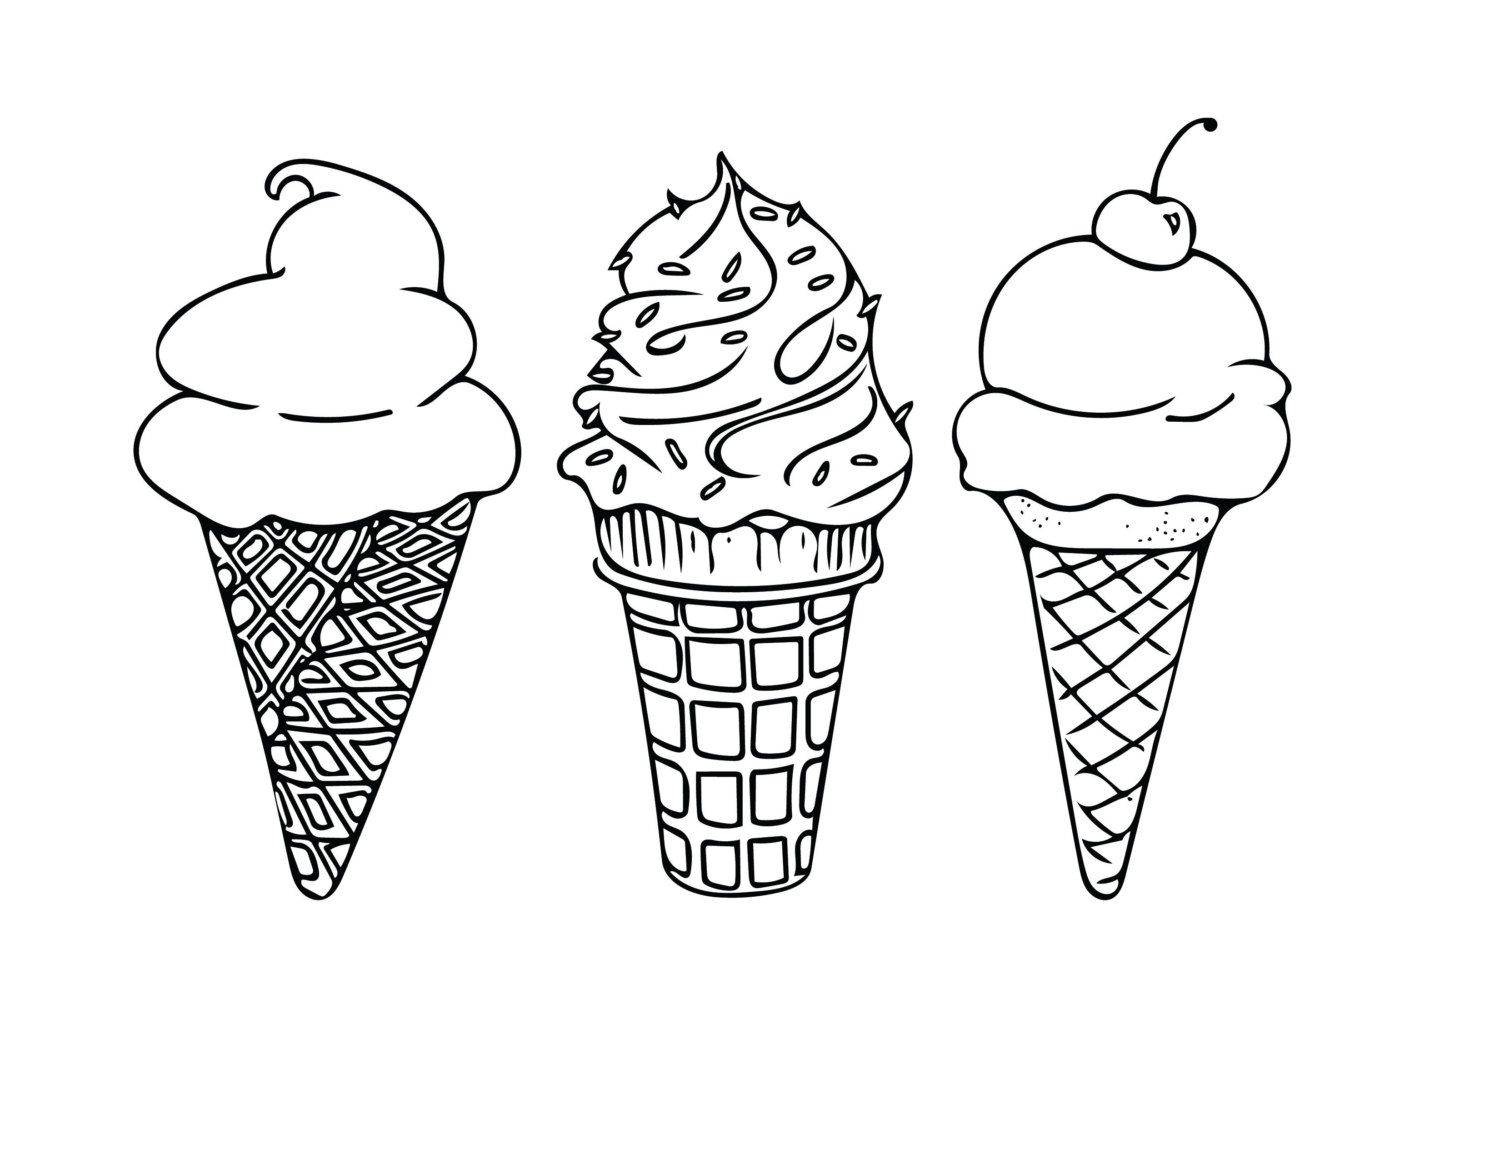 Cool Ice Cream Coloring Pages Ideas Ice Cream Coloring Pages Free Coloring Pages Ice Cream Tattoo